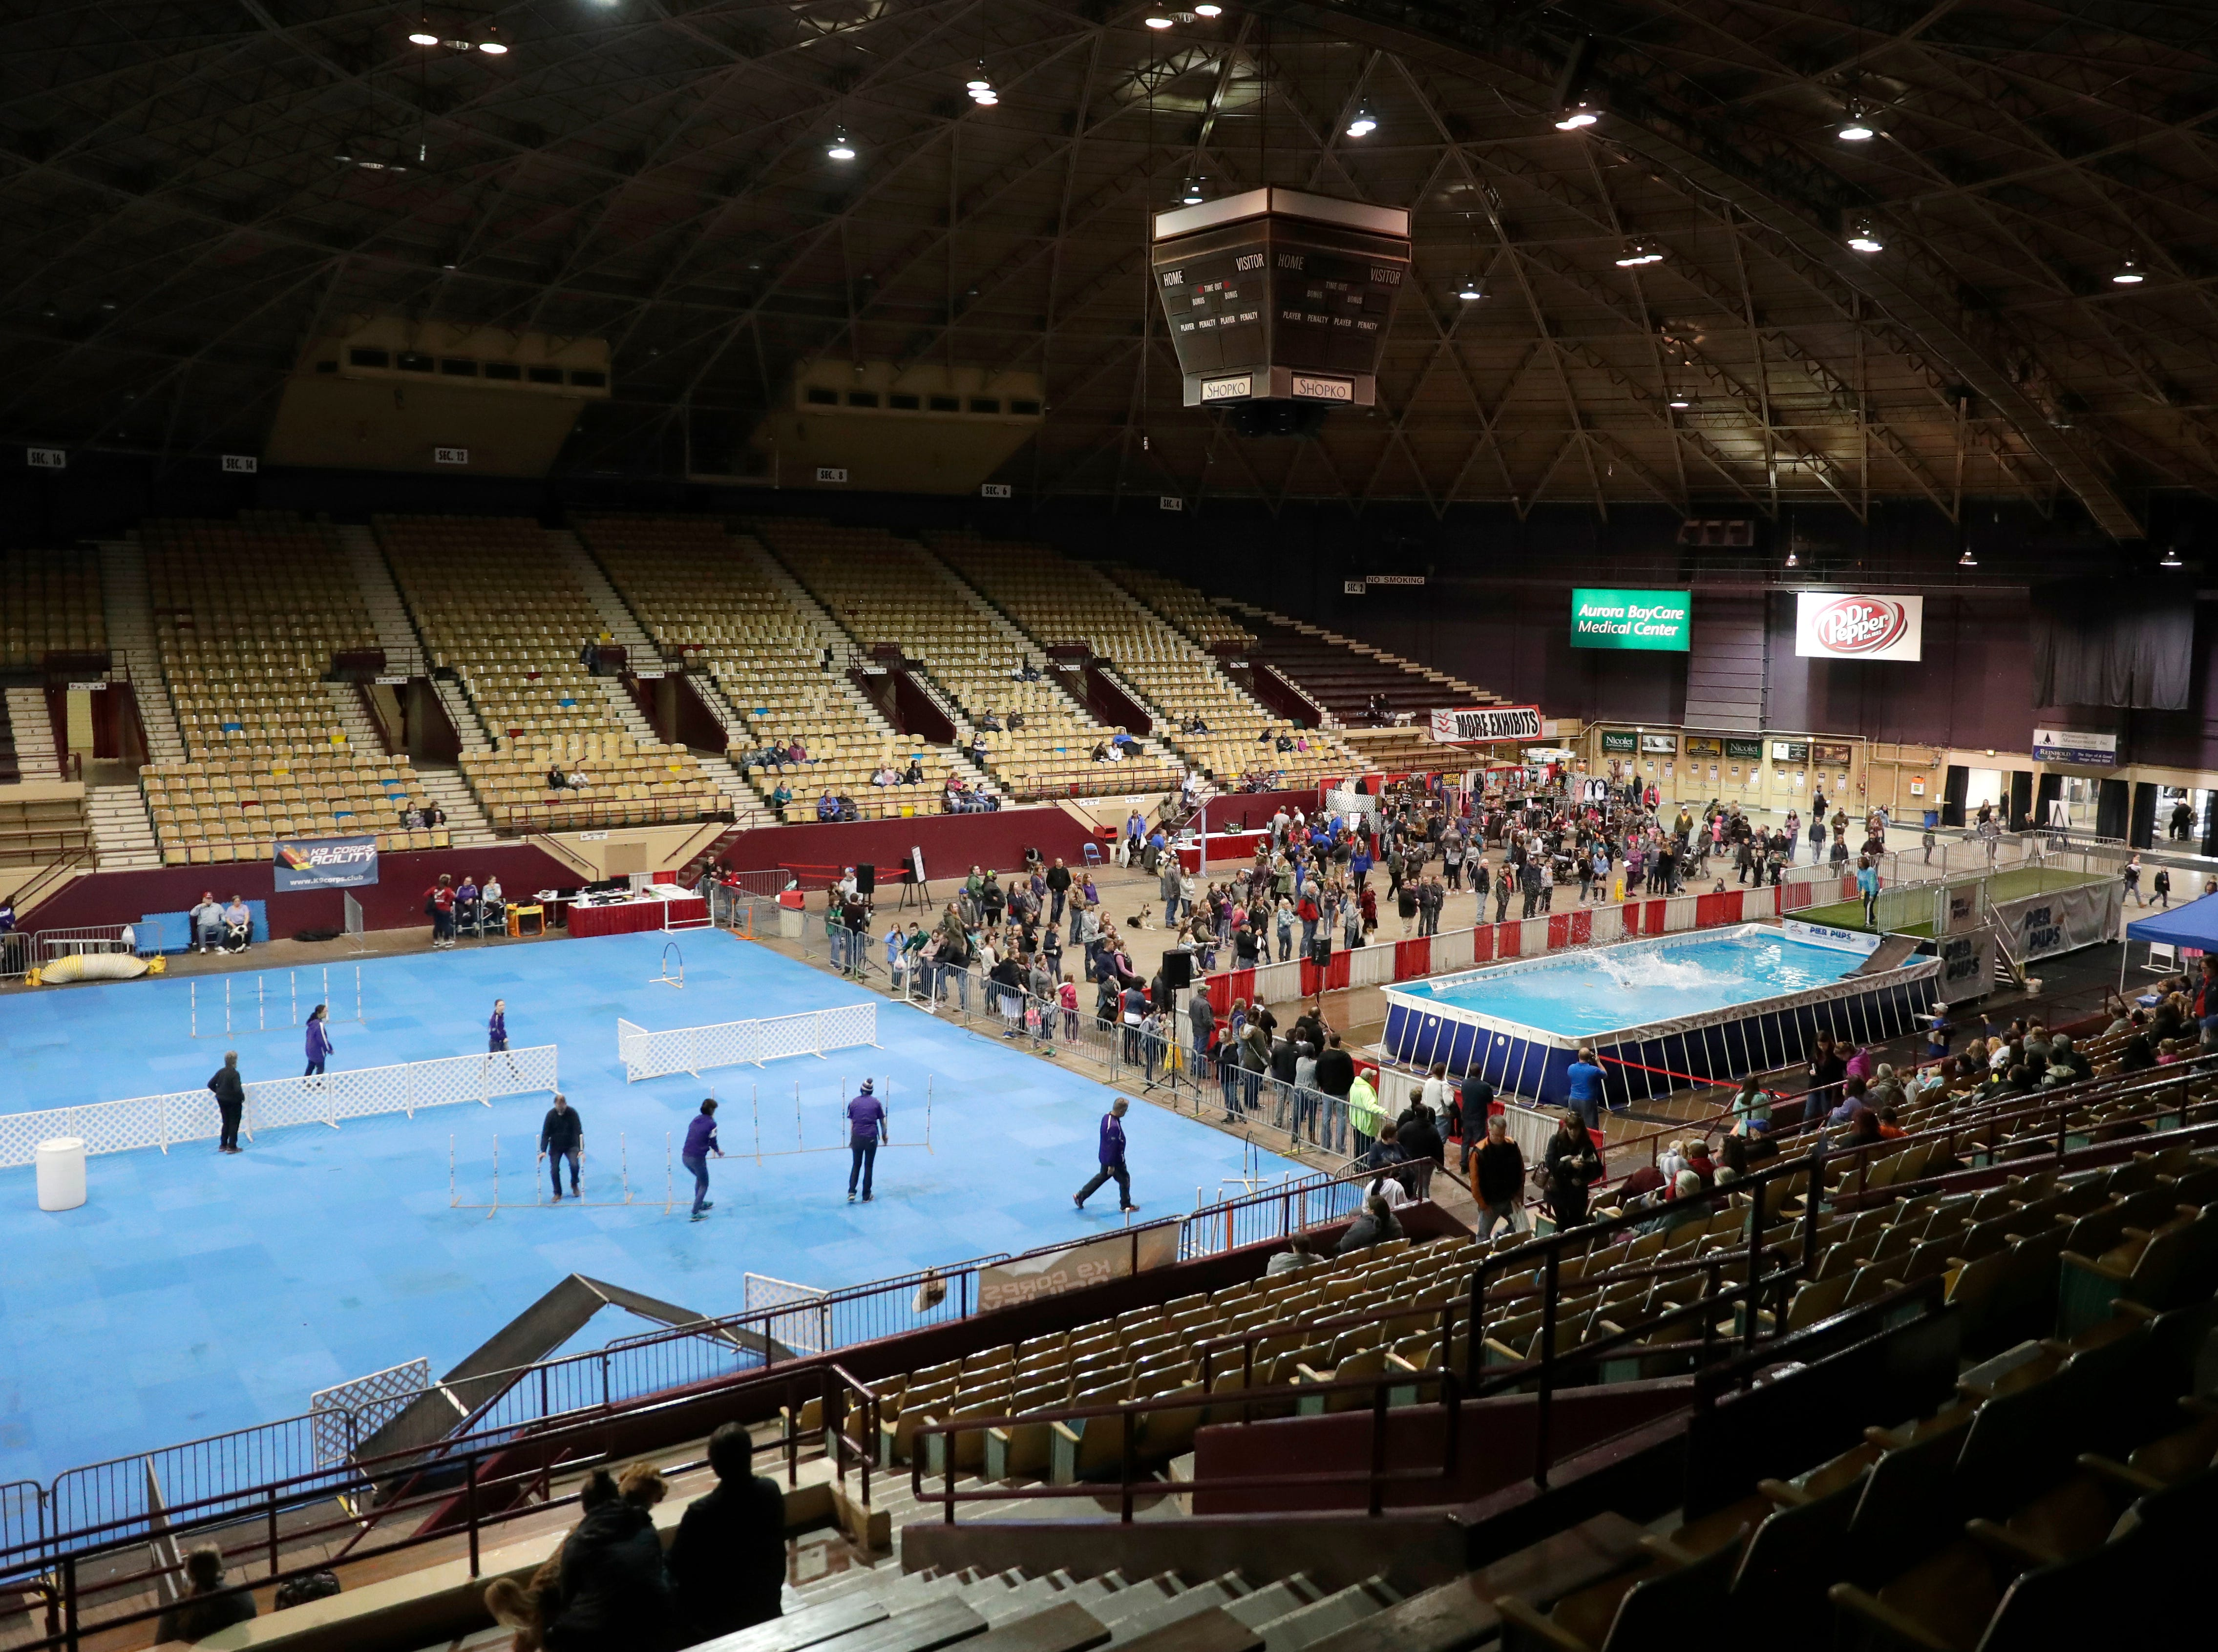 The WBAY Pet Expo held April 12-14, 2019 is the final event to be held in the Brown County Veterans Memorial Arena before it is demolished.